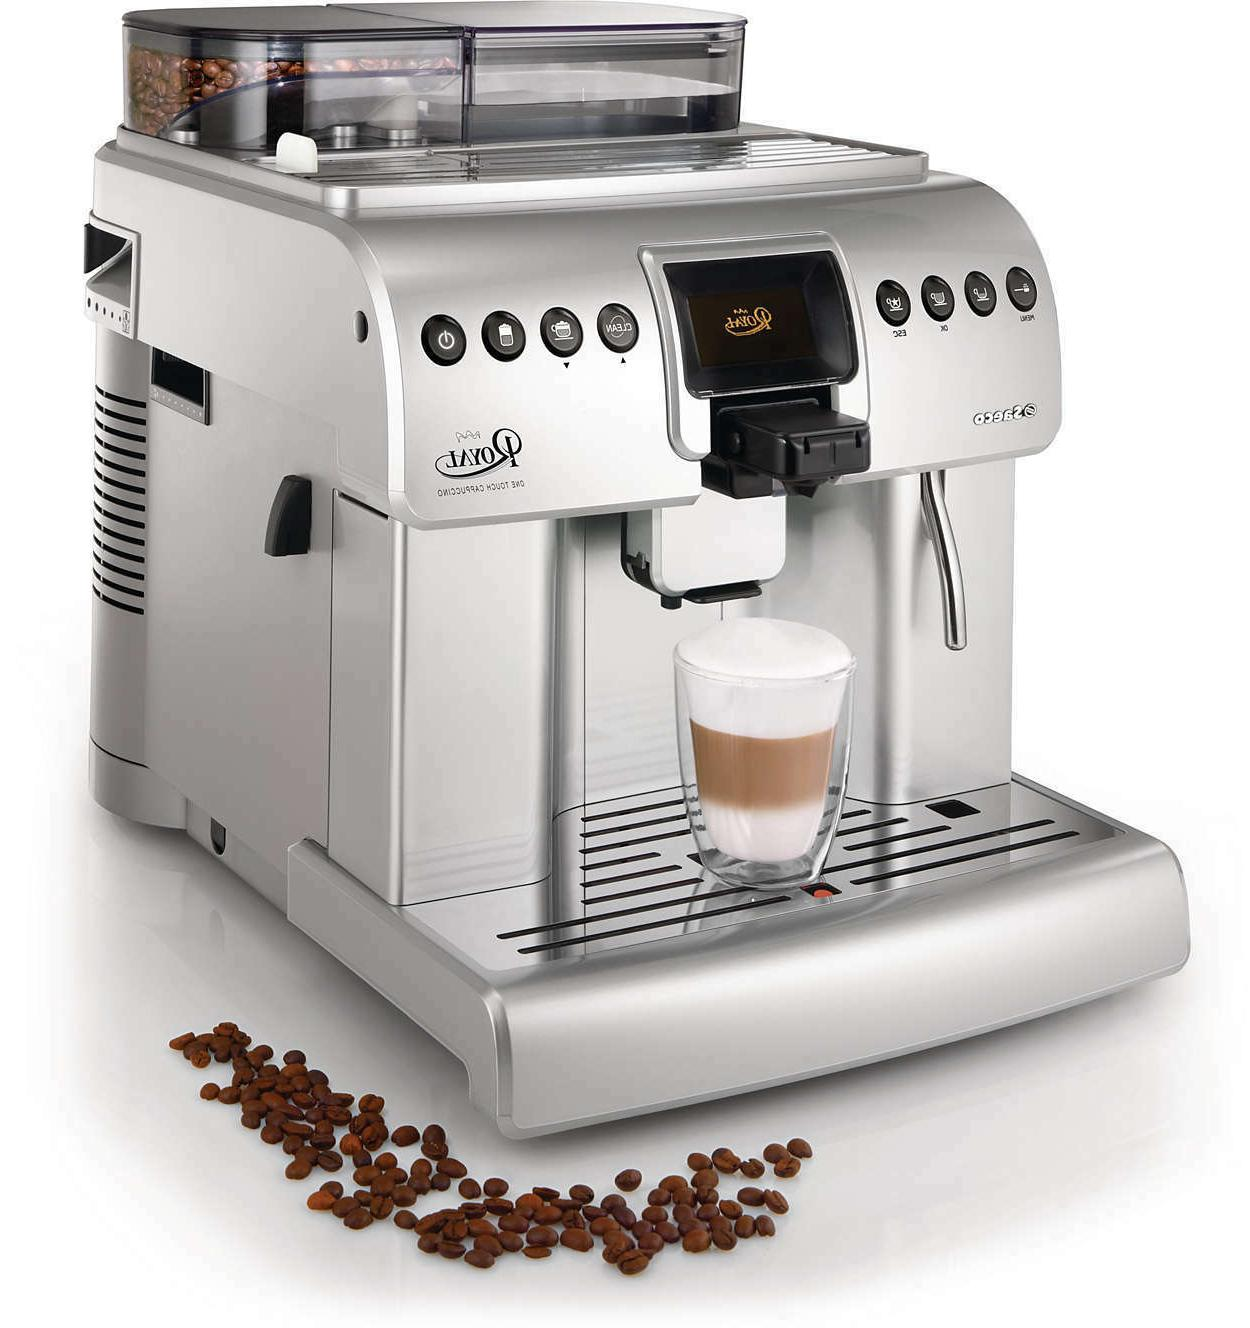 Philips One Touch Espresso Machine - Made in Italy